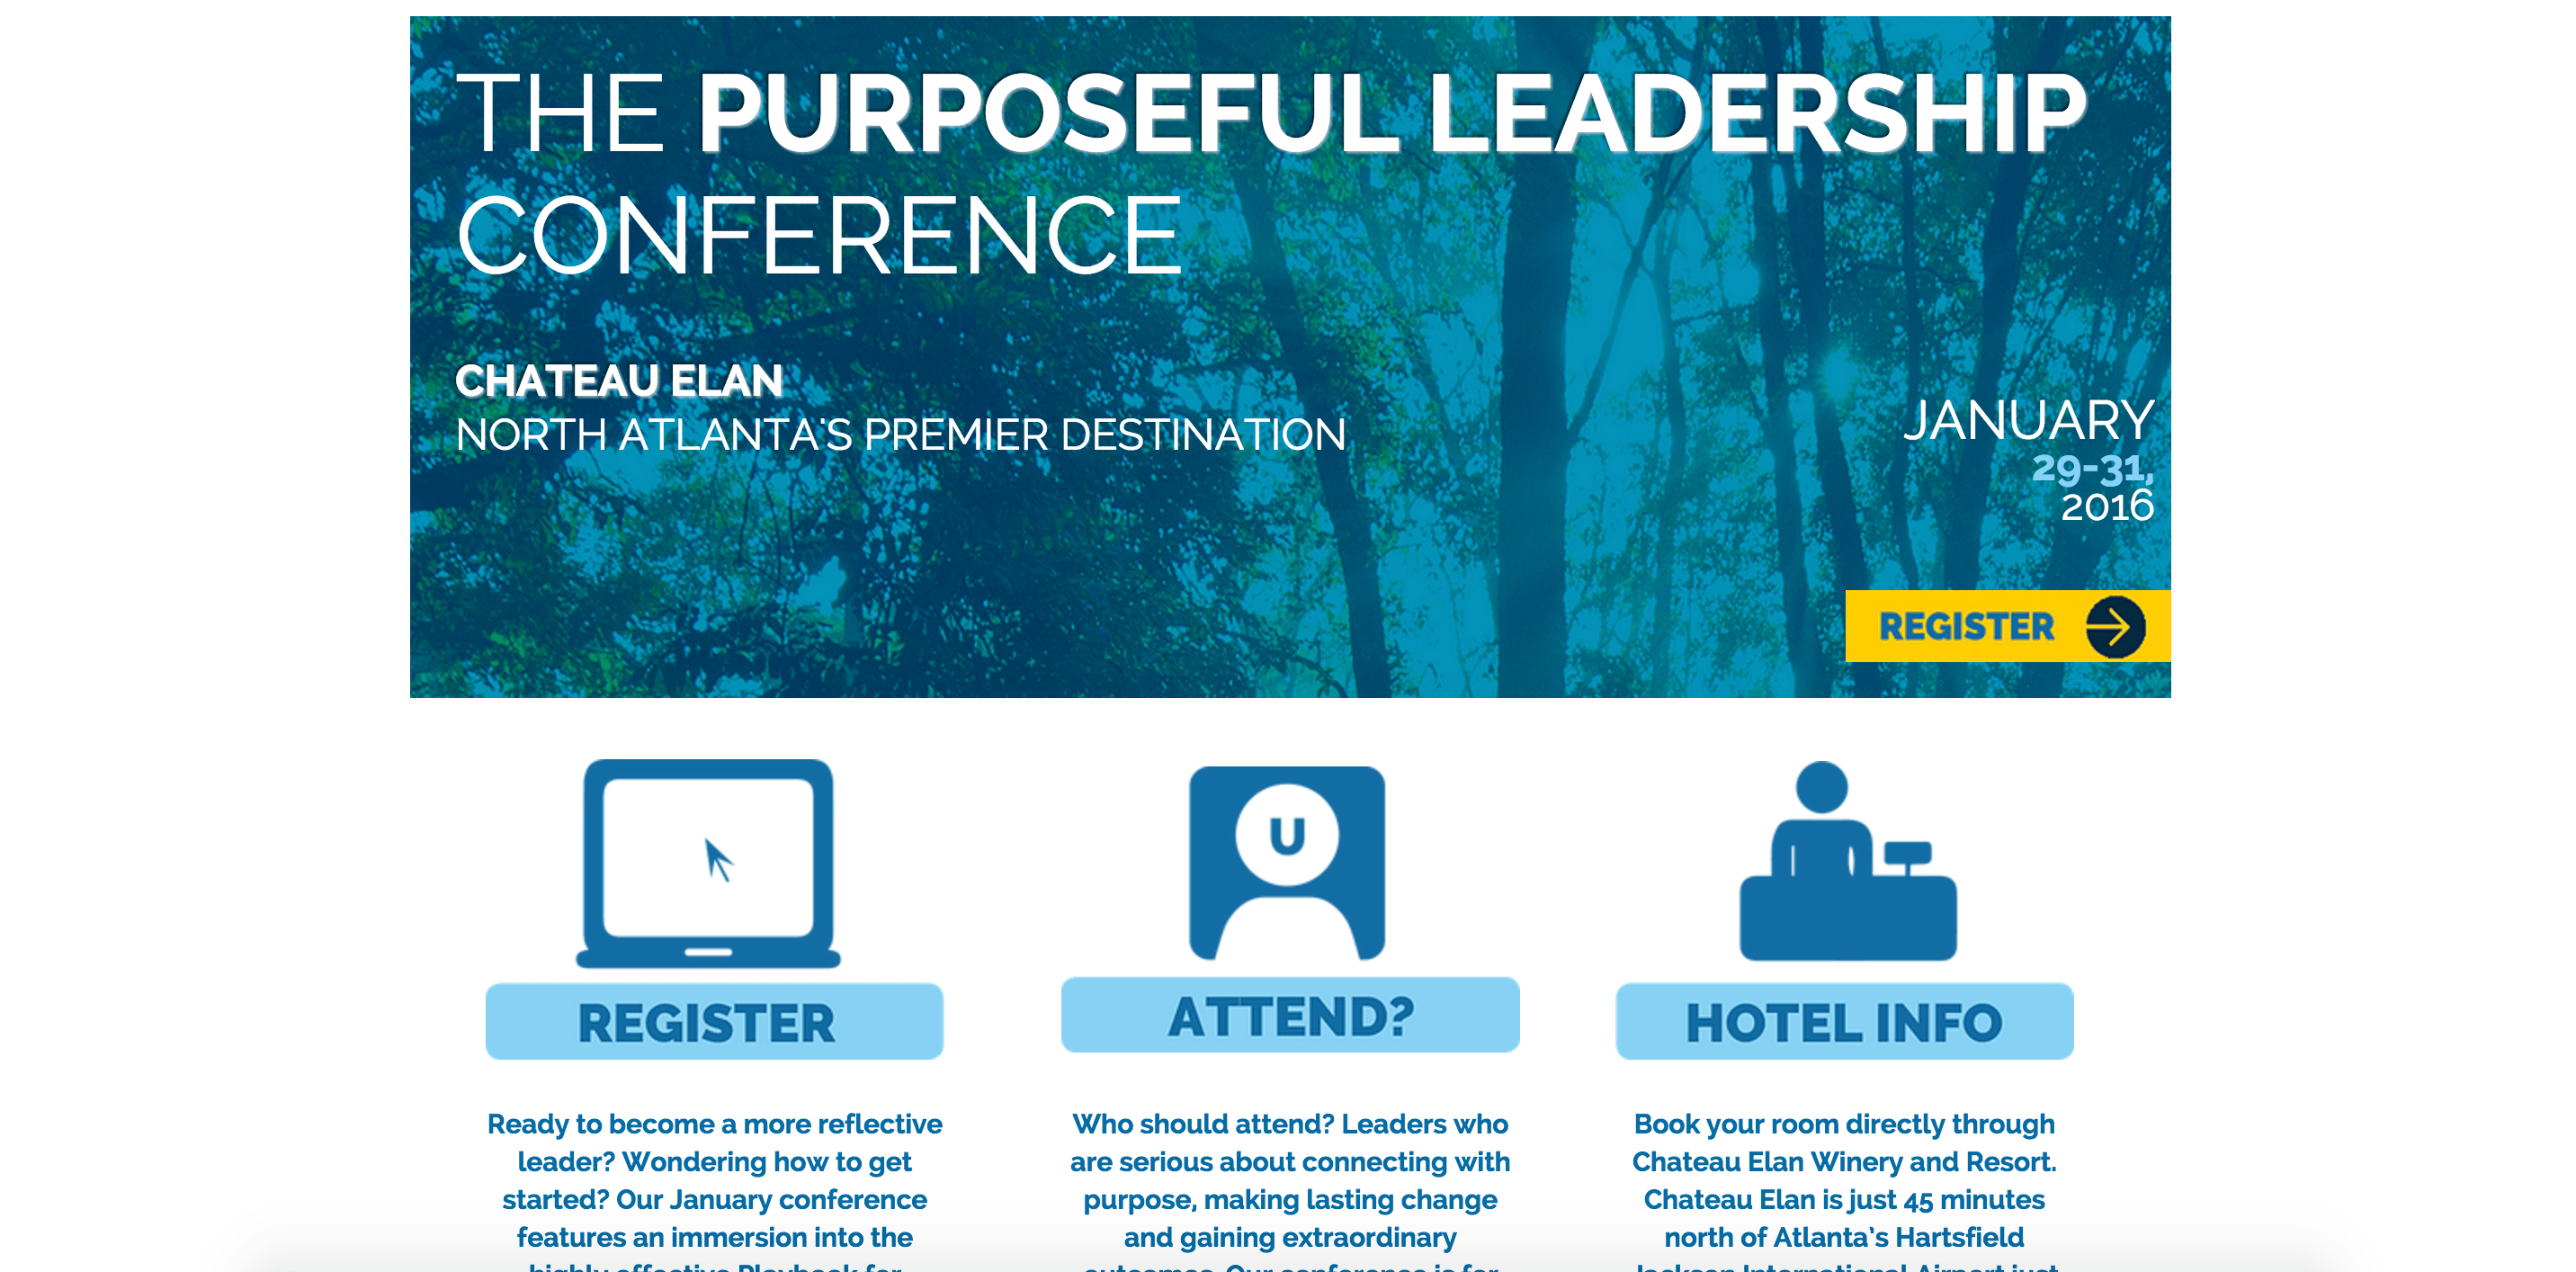 Purposeful Leadership Conference